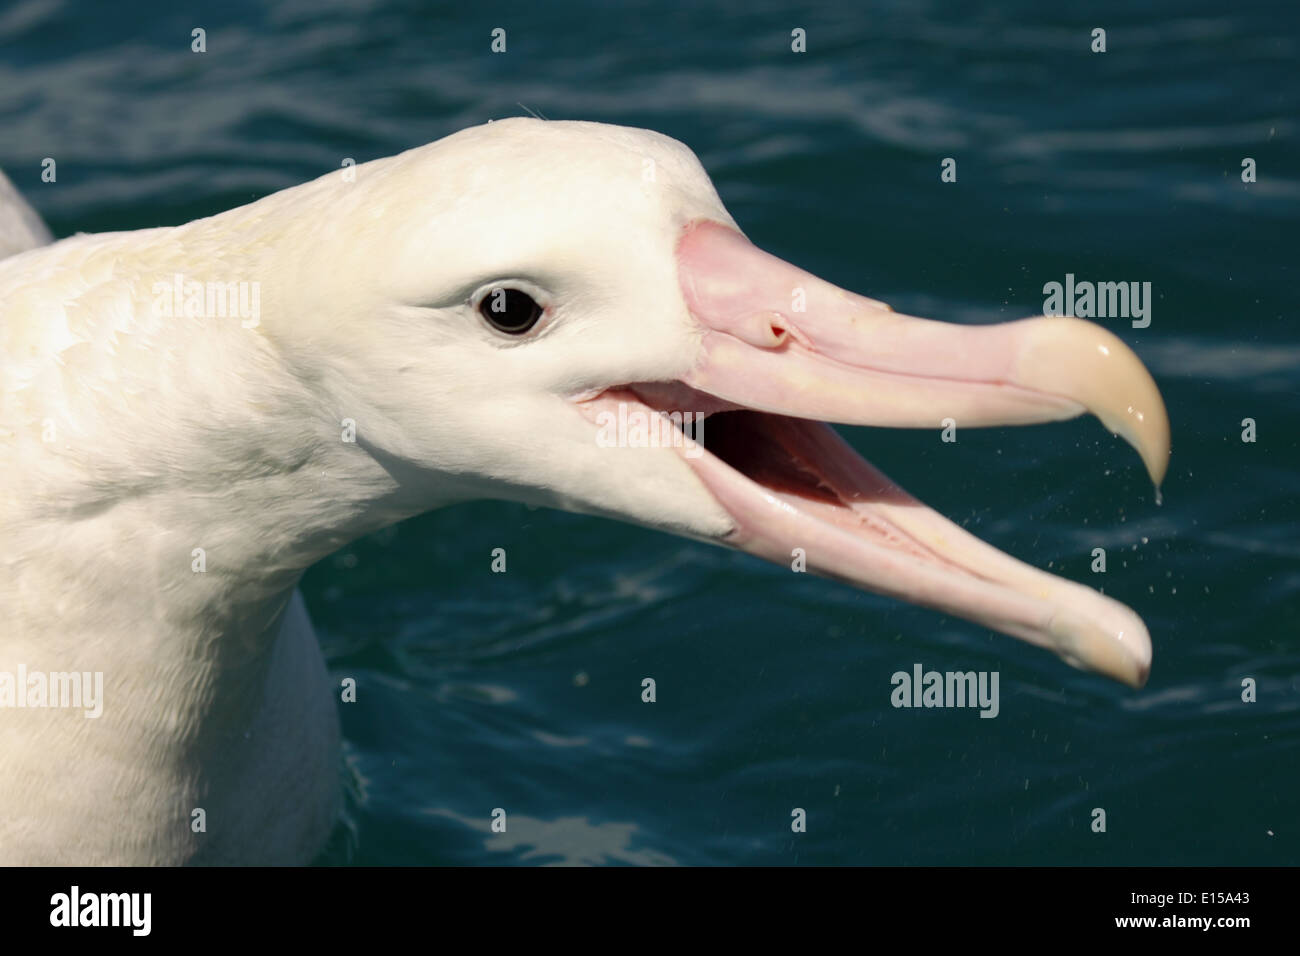 A Wandering Albatross calling loudly. - Stock Image